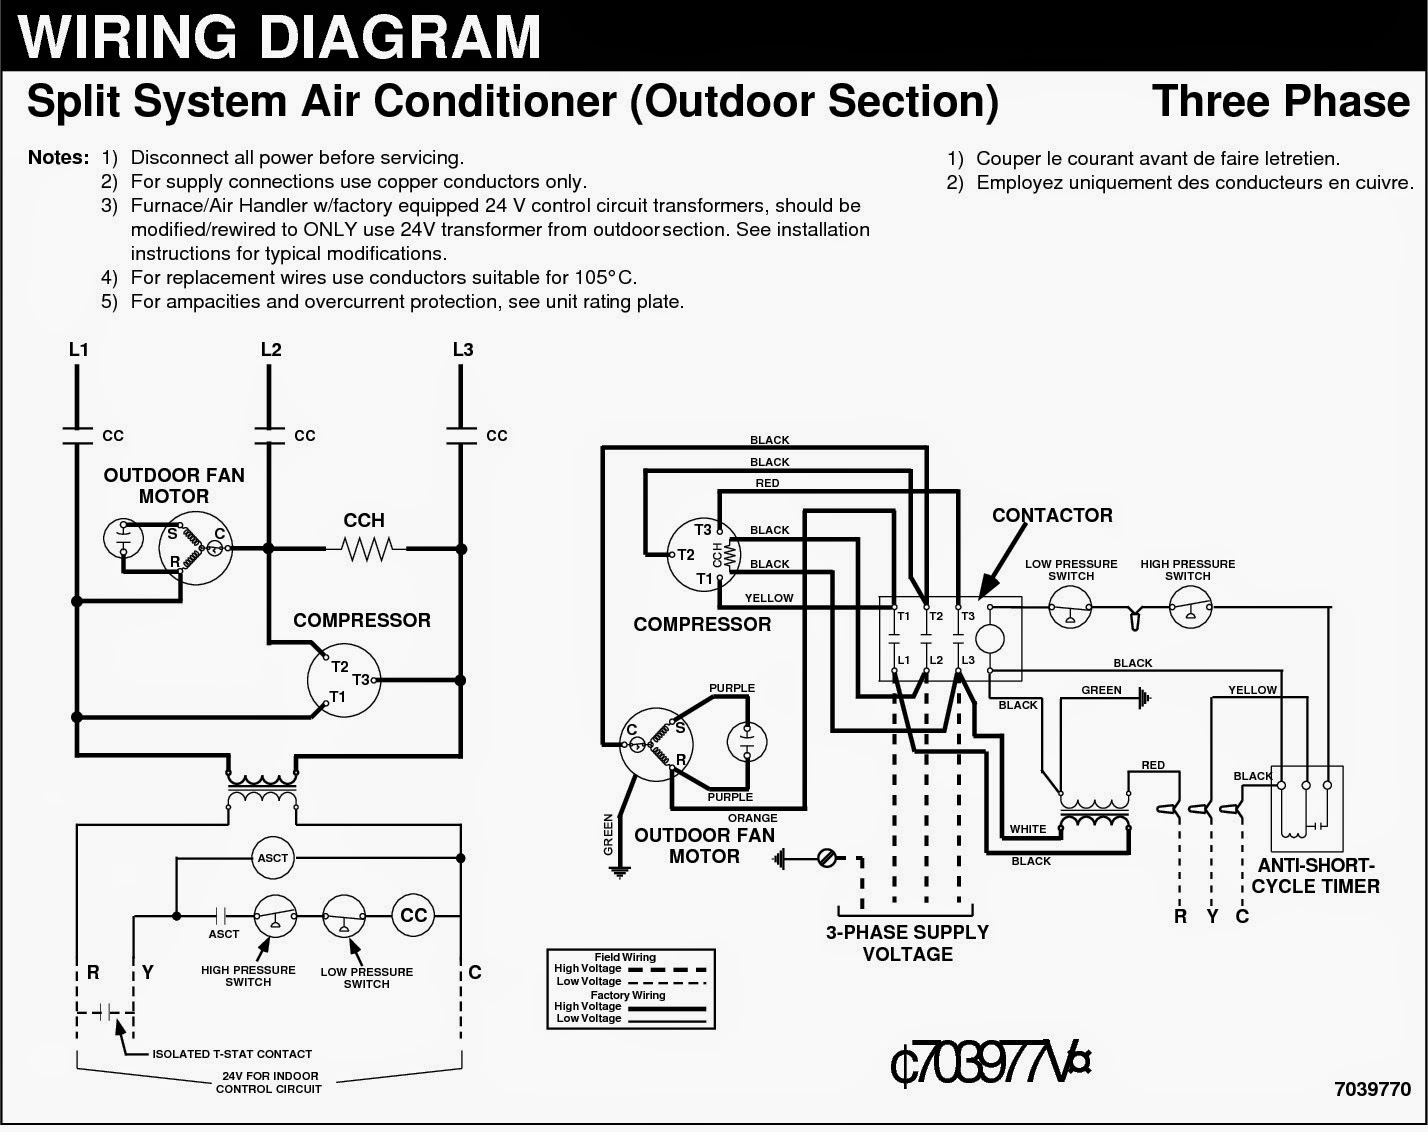 81094 Power Steering 97 Cummins together with Dryer repair chapter 2 likewise Central Air Conditioner Wiring Connection likewise Ac  pressor Wiring Diagram If An Electric Motor That Uses A Starting Or Run Capacitor Wont Run Try Replacing The Capacitor 2 likewise RepairGuideContent. on wiring diagram for thermostat wires to a outside air